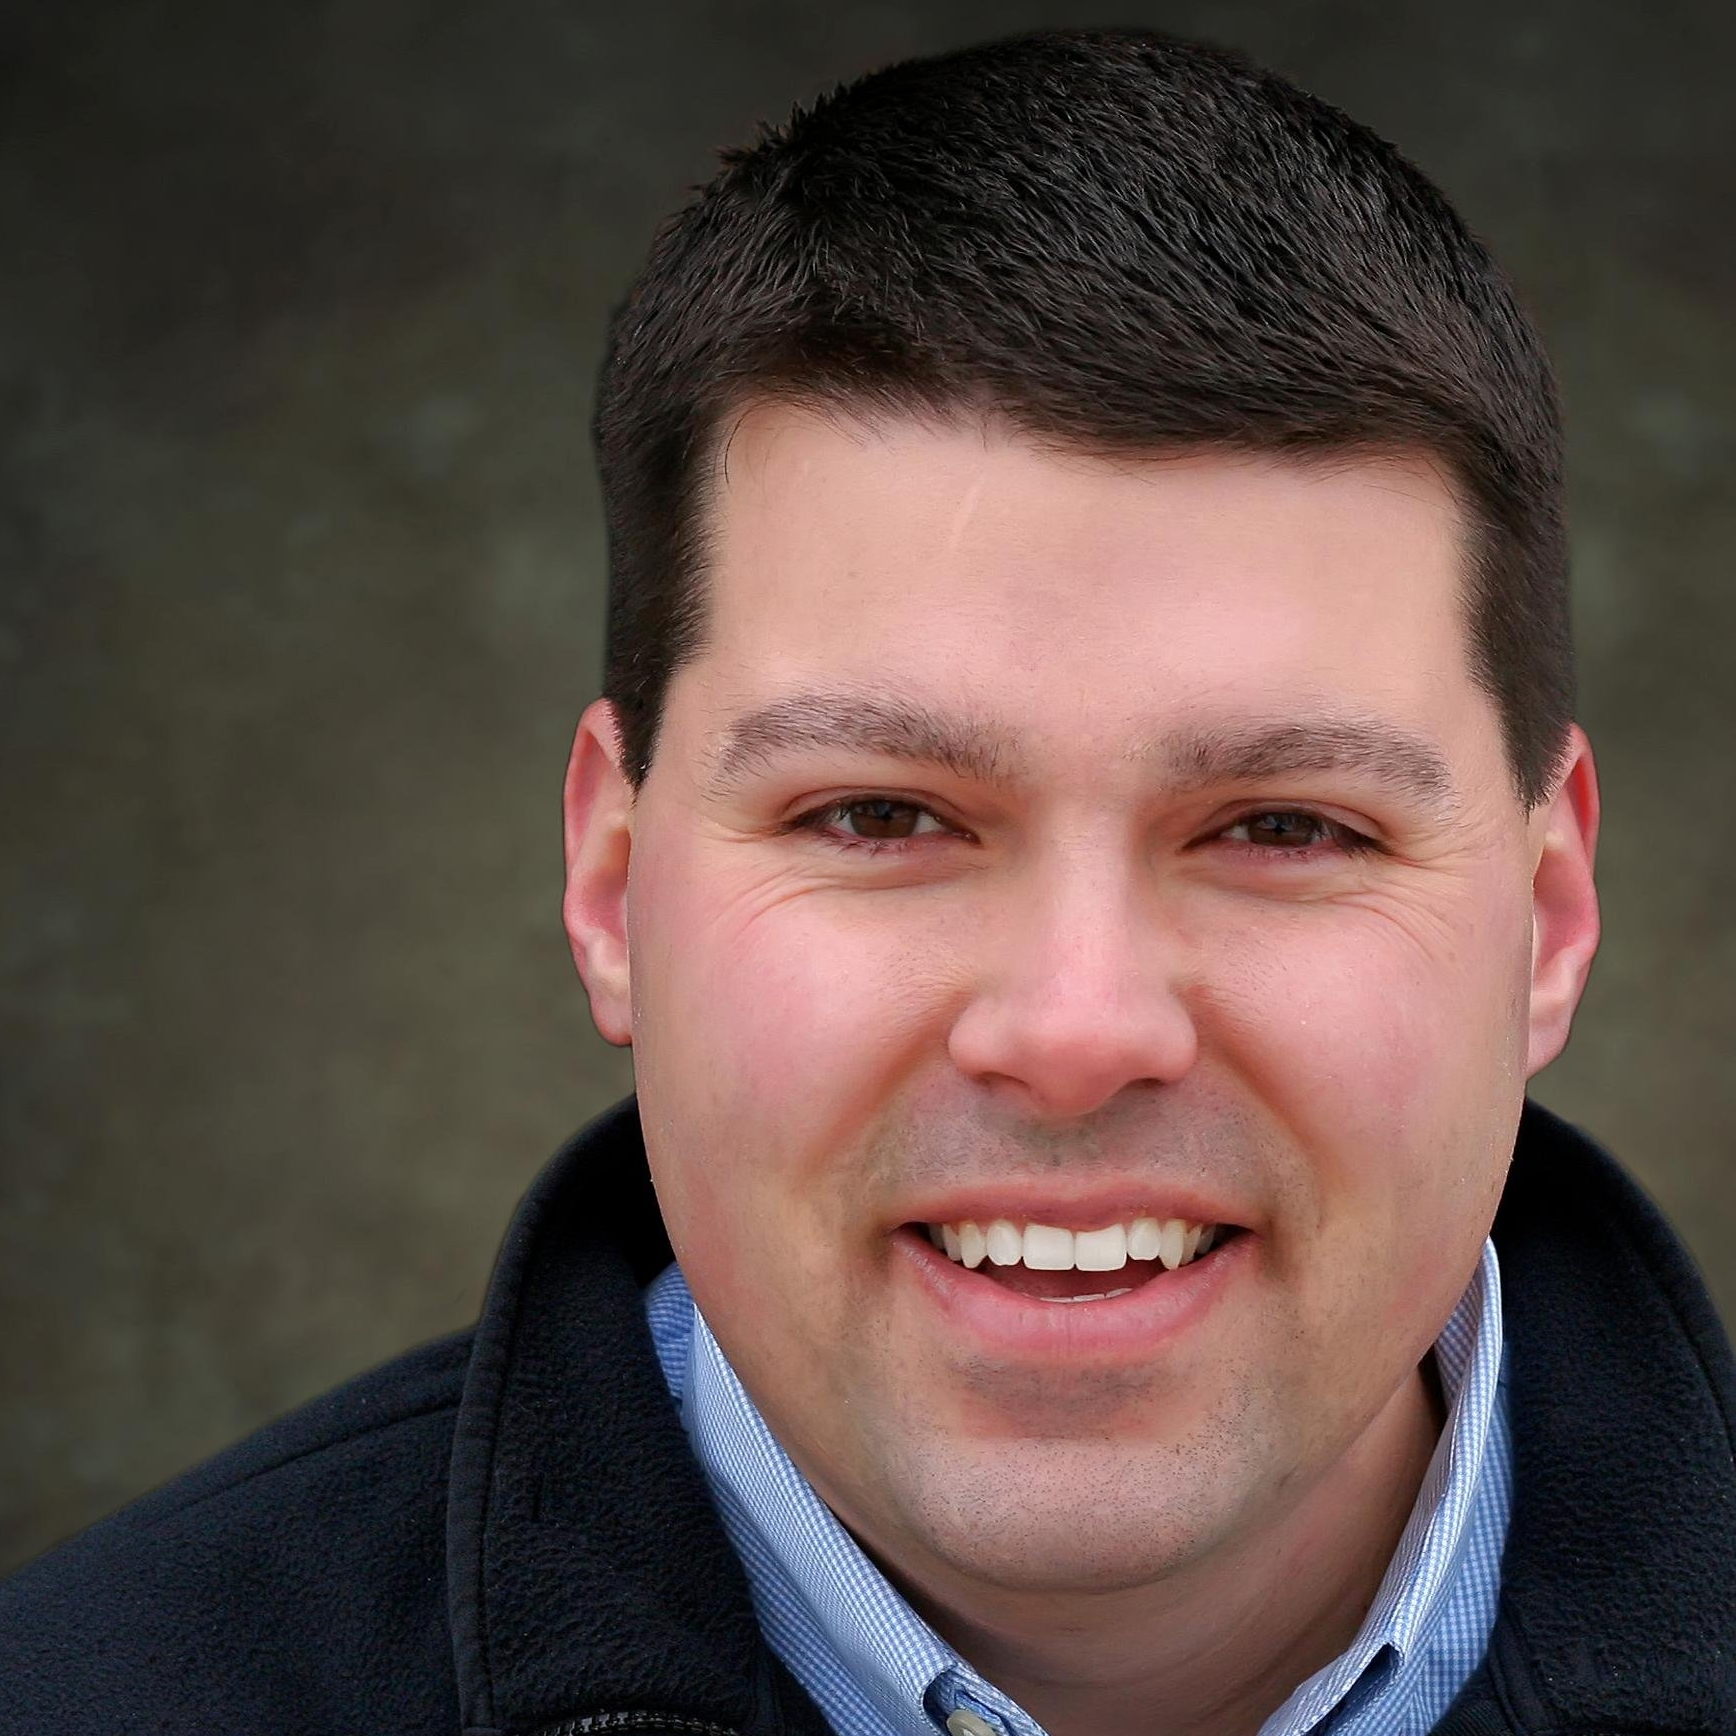 Tony Reinke - Author, Editor of Desiring God Ministries, and Host of the Popular Ask Pastor John Podcast